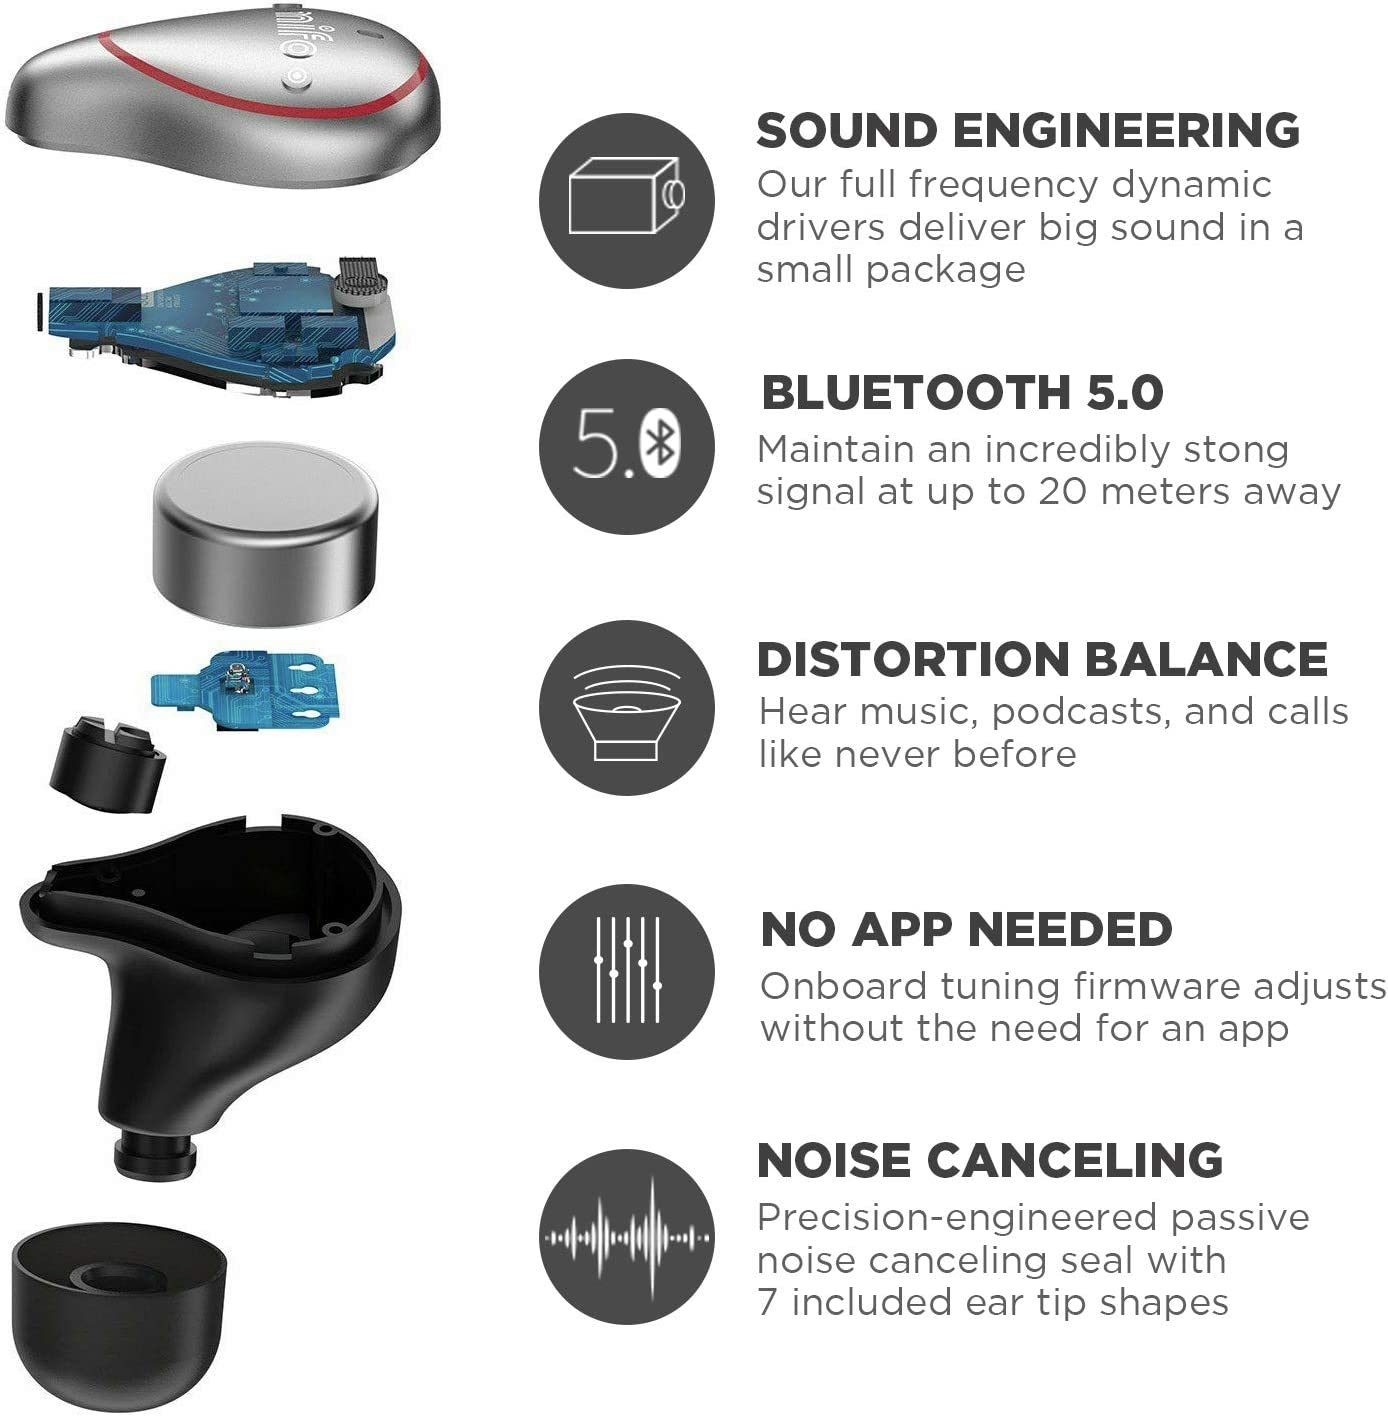 Built-in Mic Bluetooth Earbuds with 2600mAH Portable Charging Case mifo O5 PLUS Wireless Earbuds IPX7 Waterproof Bluetooth 5 Earbuds with 100 Hours Playtime Grey Hi-Fi Sound Wireless Headphones